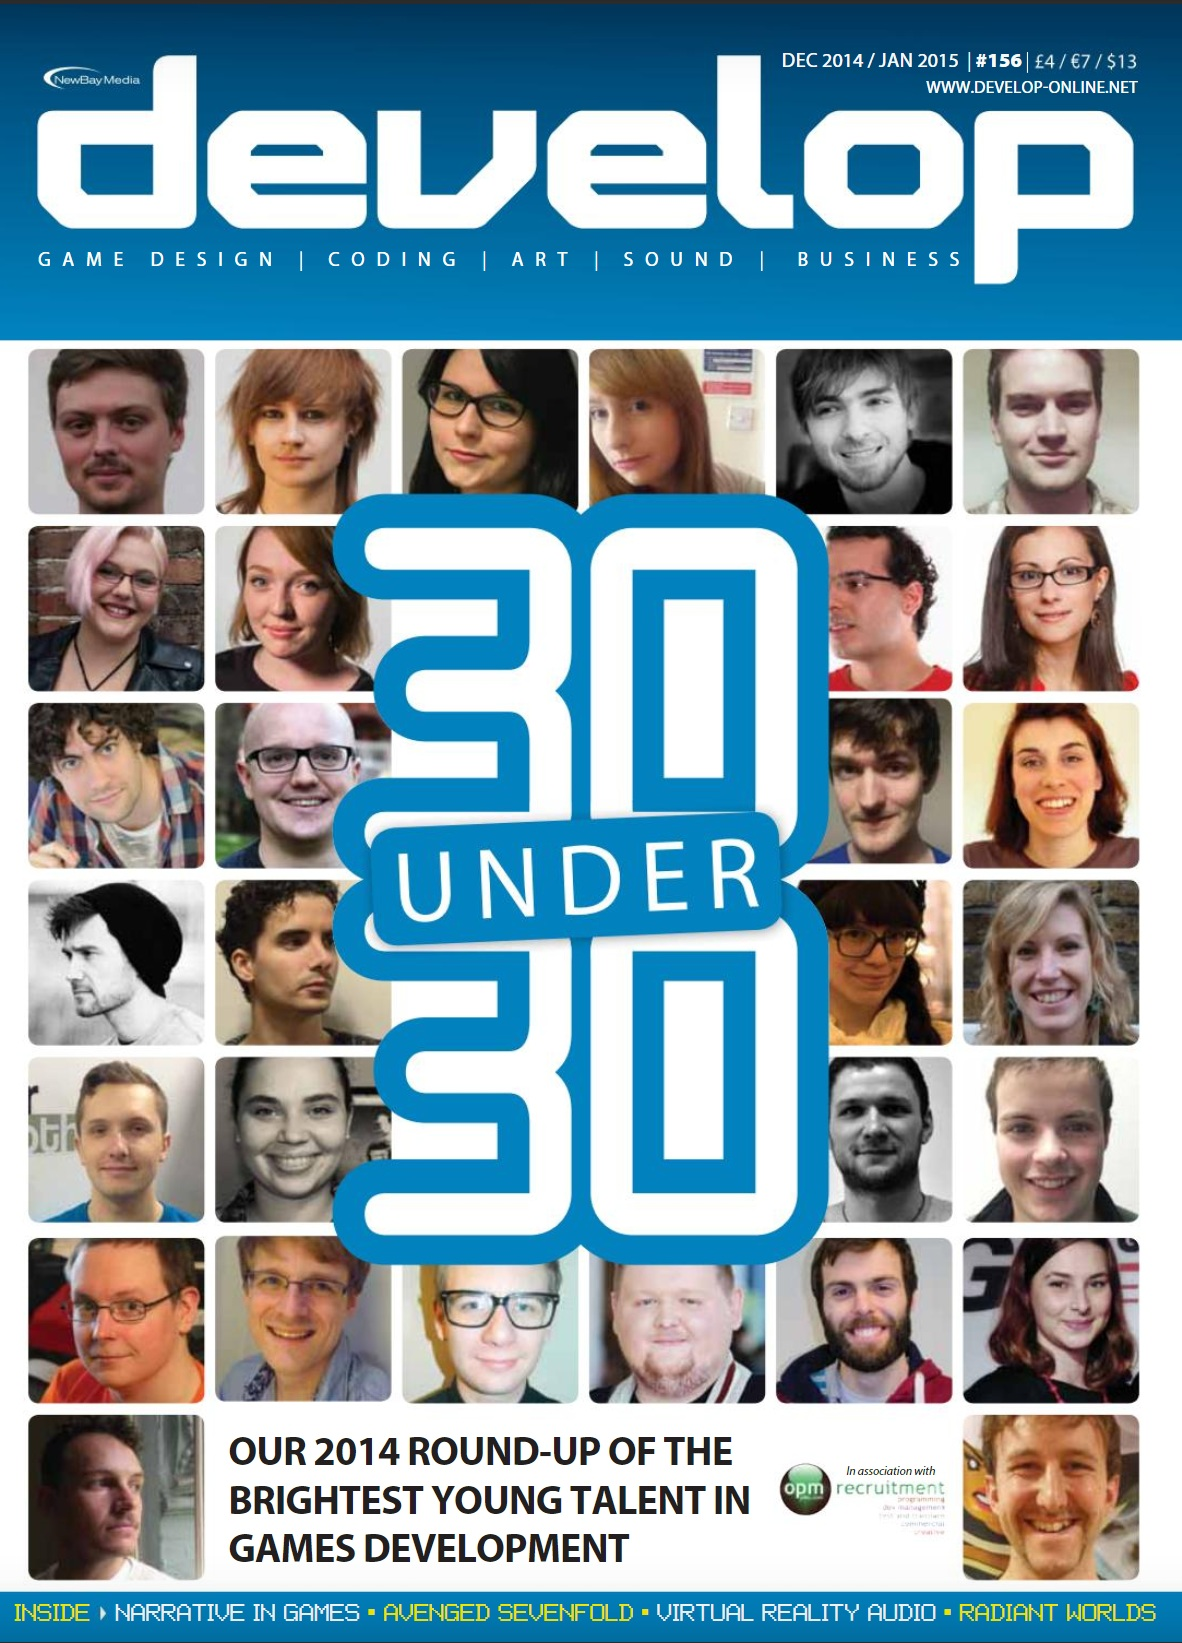 Named one of Develop Online's 30under30, 2015